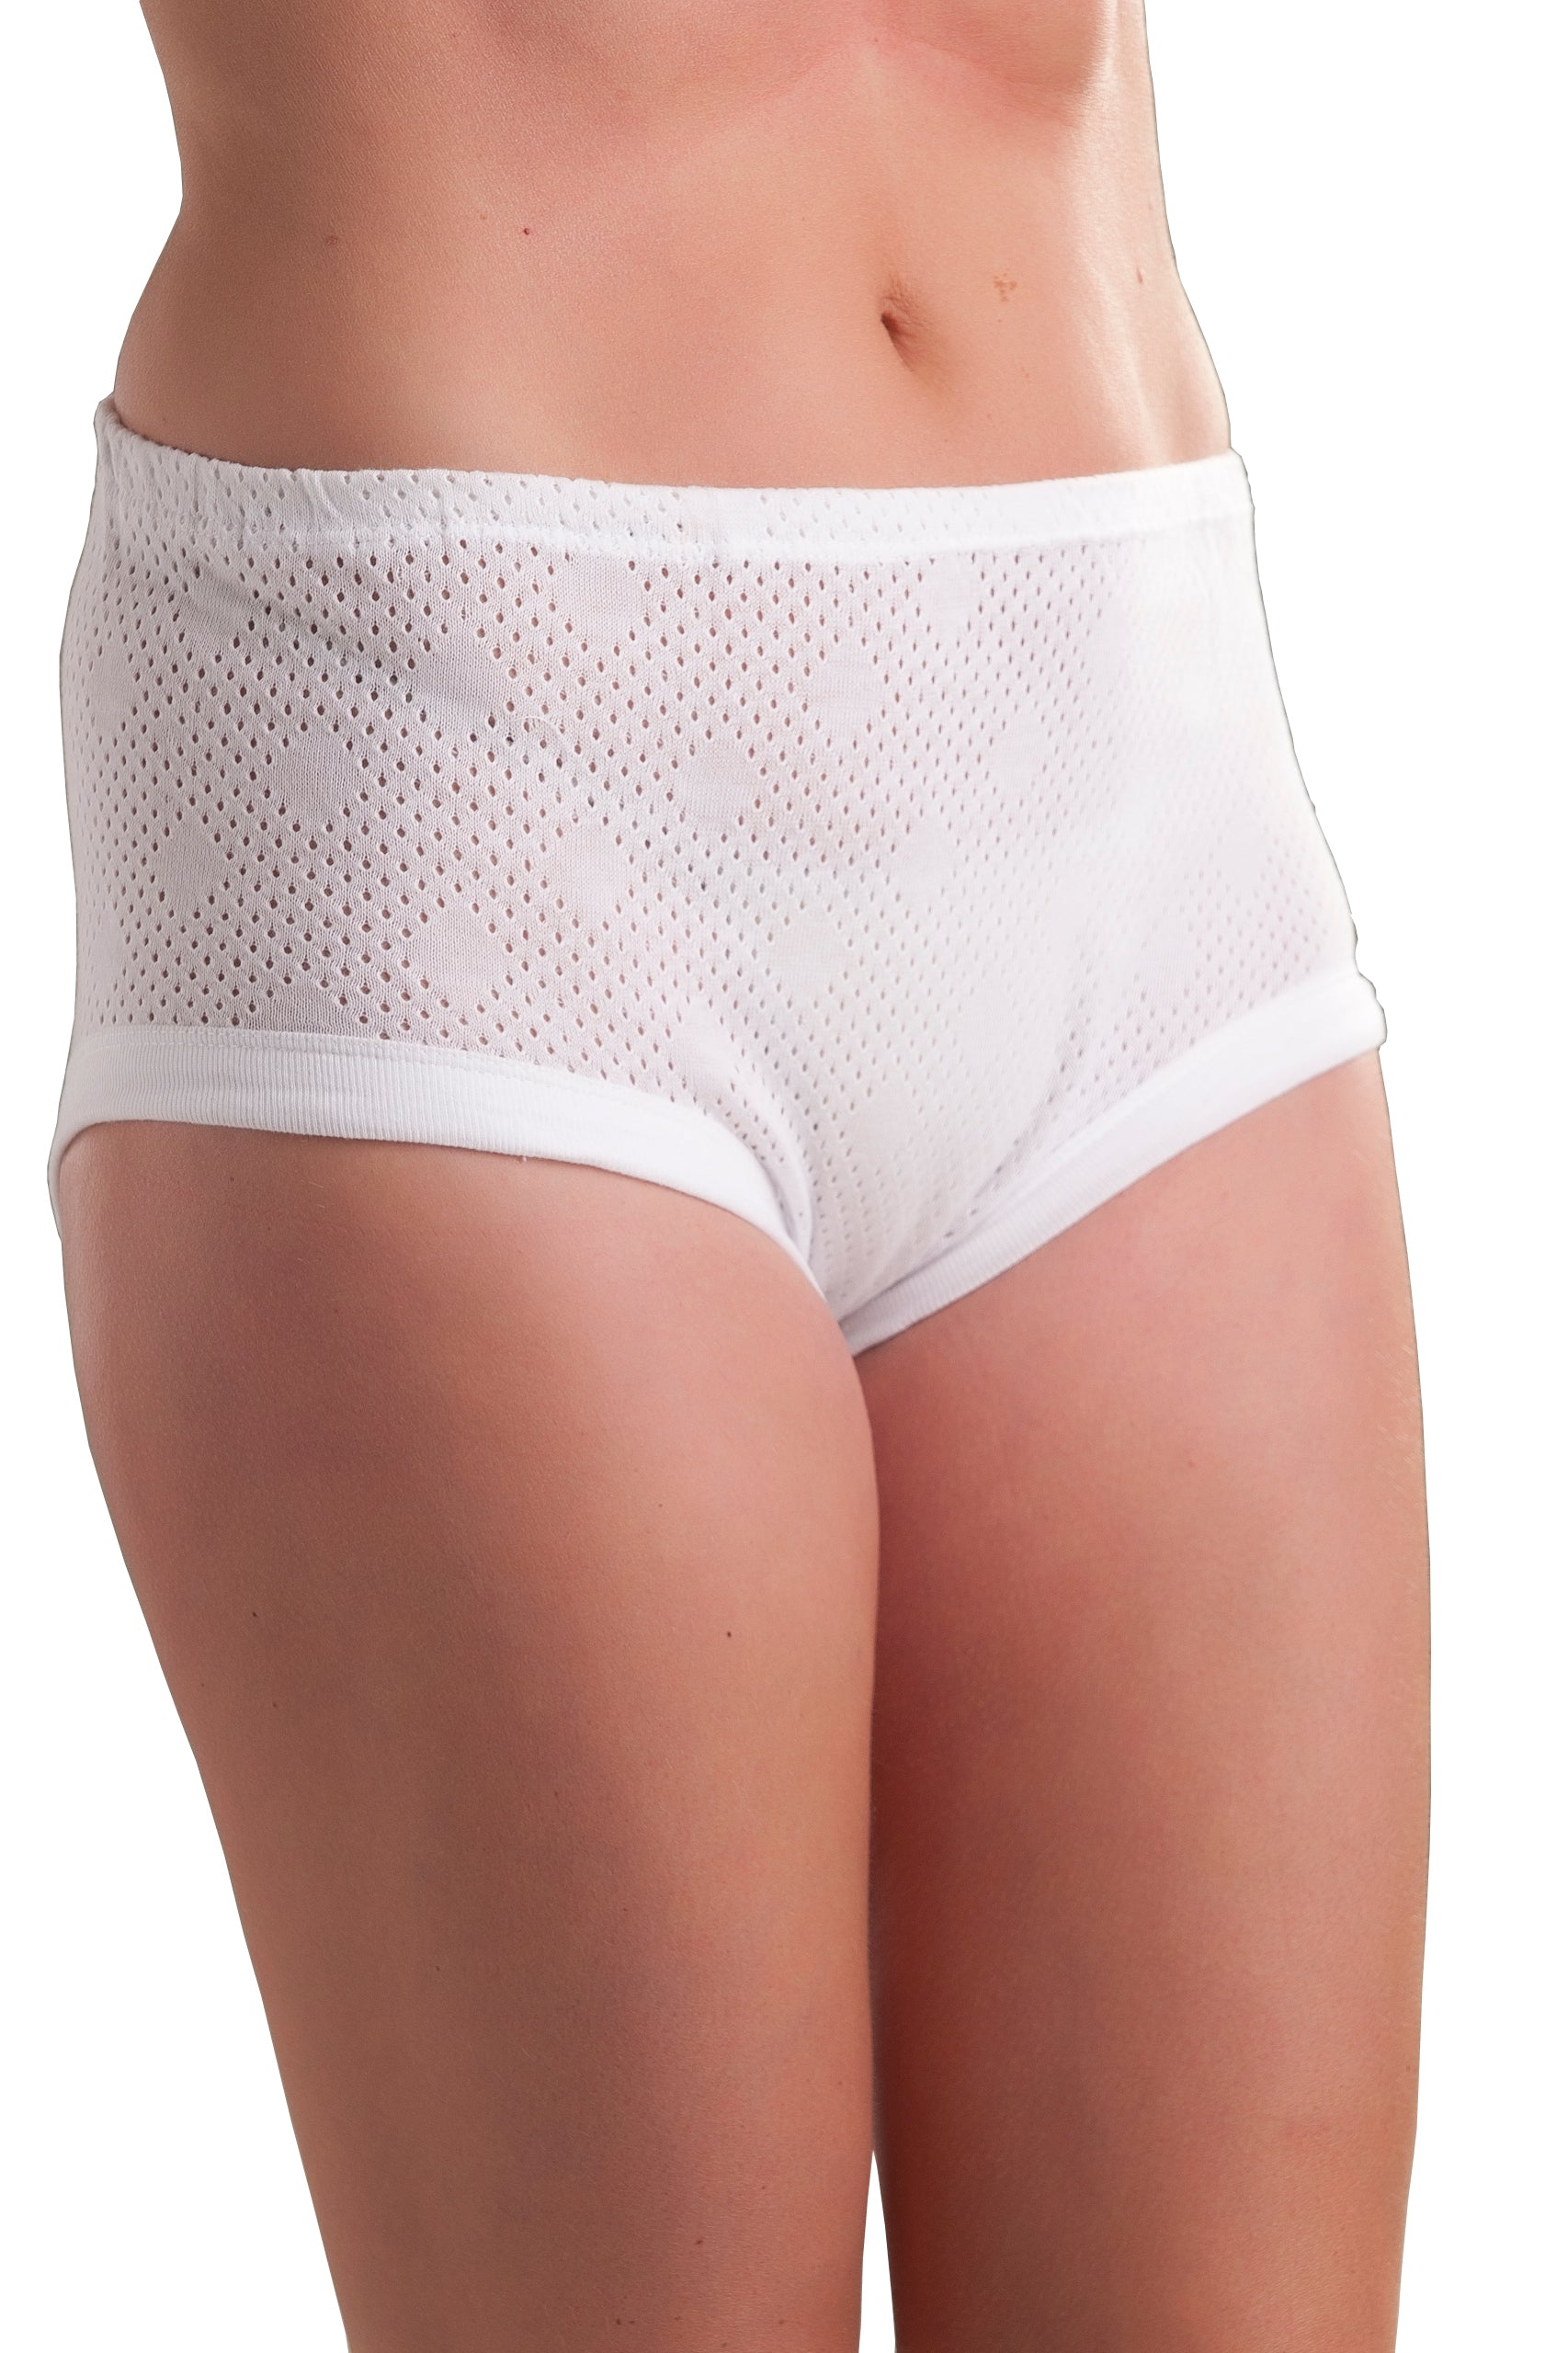 3 Pack : Passionelle® Womens Cuff Leg Extra Comfortable Mama Briefs - 100% Soft Cotton Eyelet Fabric